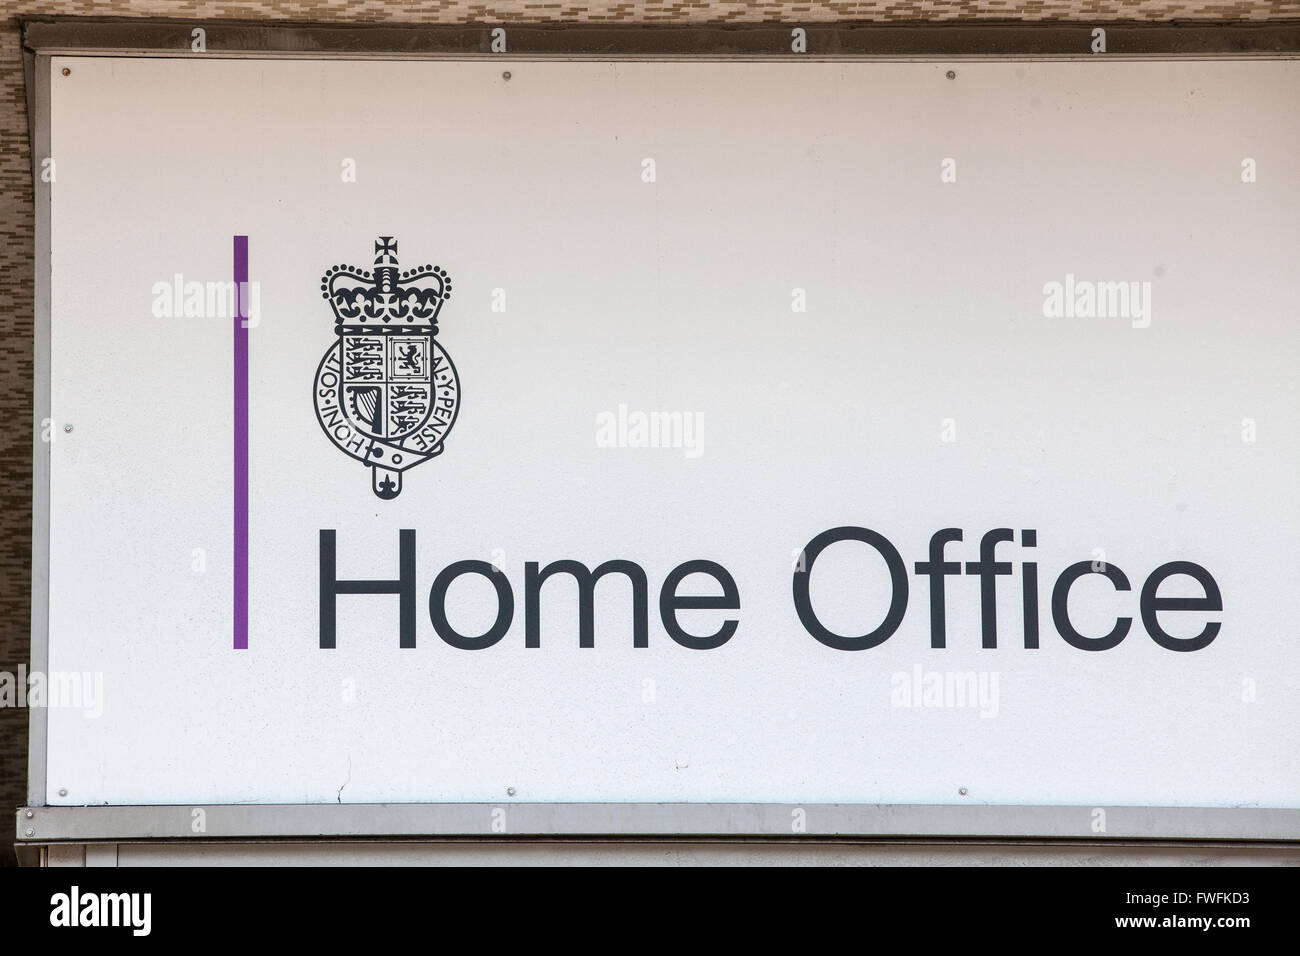 Home Office Uk Stock Photos & Home Office Uk Stock Images - Alamy